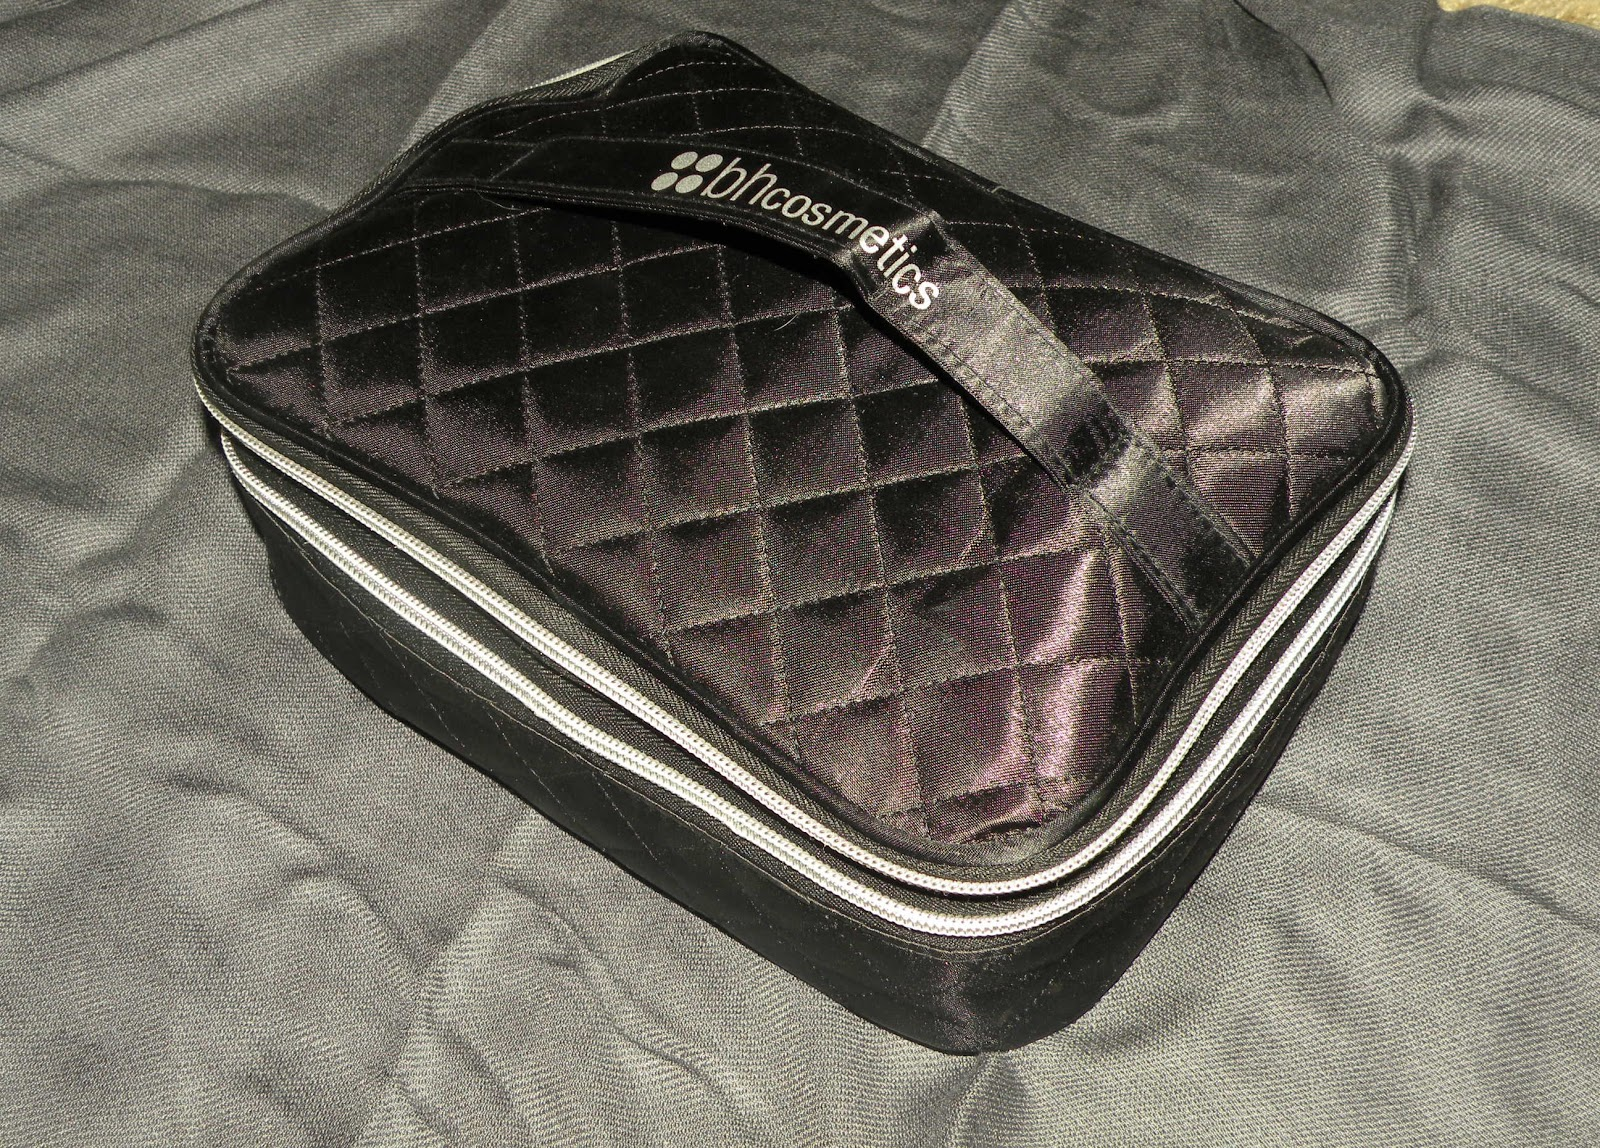 If You Travel A Lot The Bh Cosmetics Chic Sleek Makeup Bag Is Perfect For Curly On 10 Yes It S Beautiful Handy And